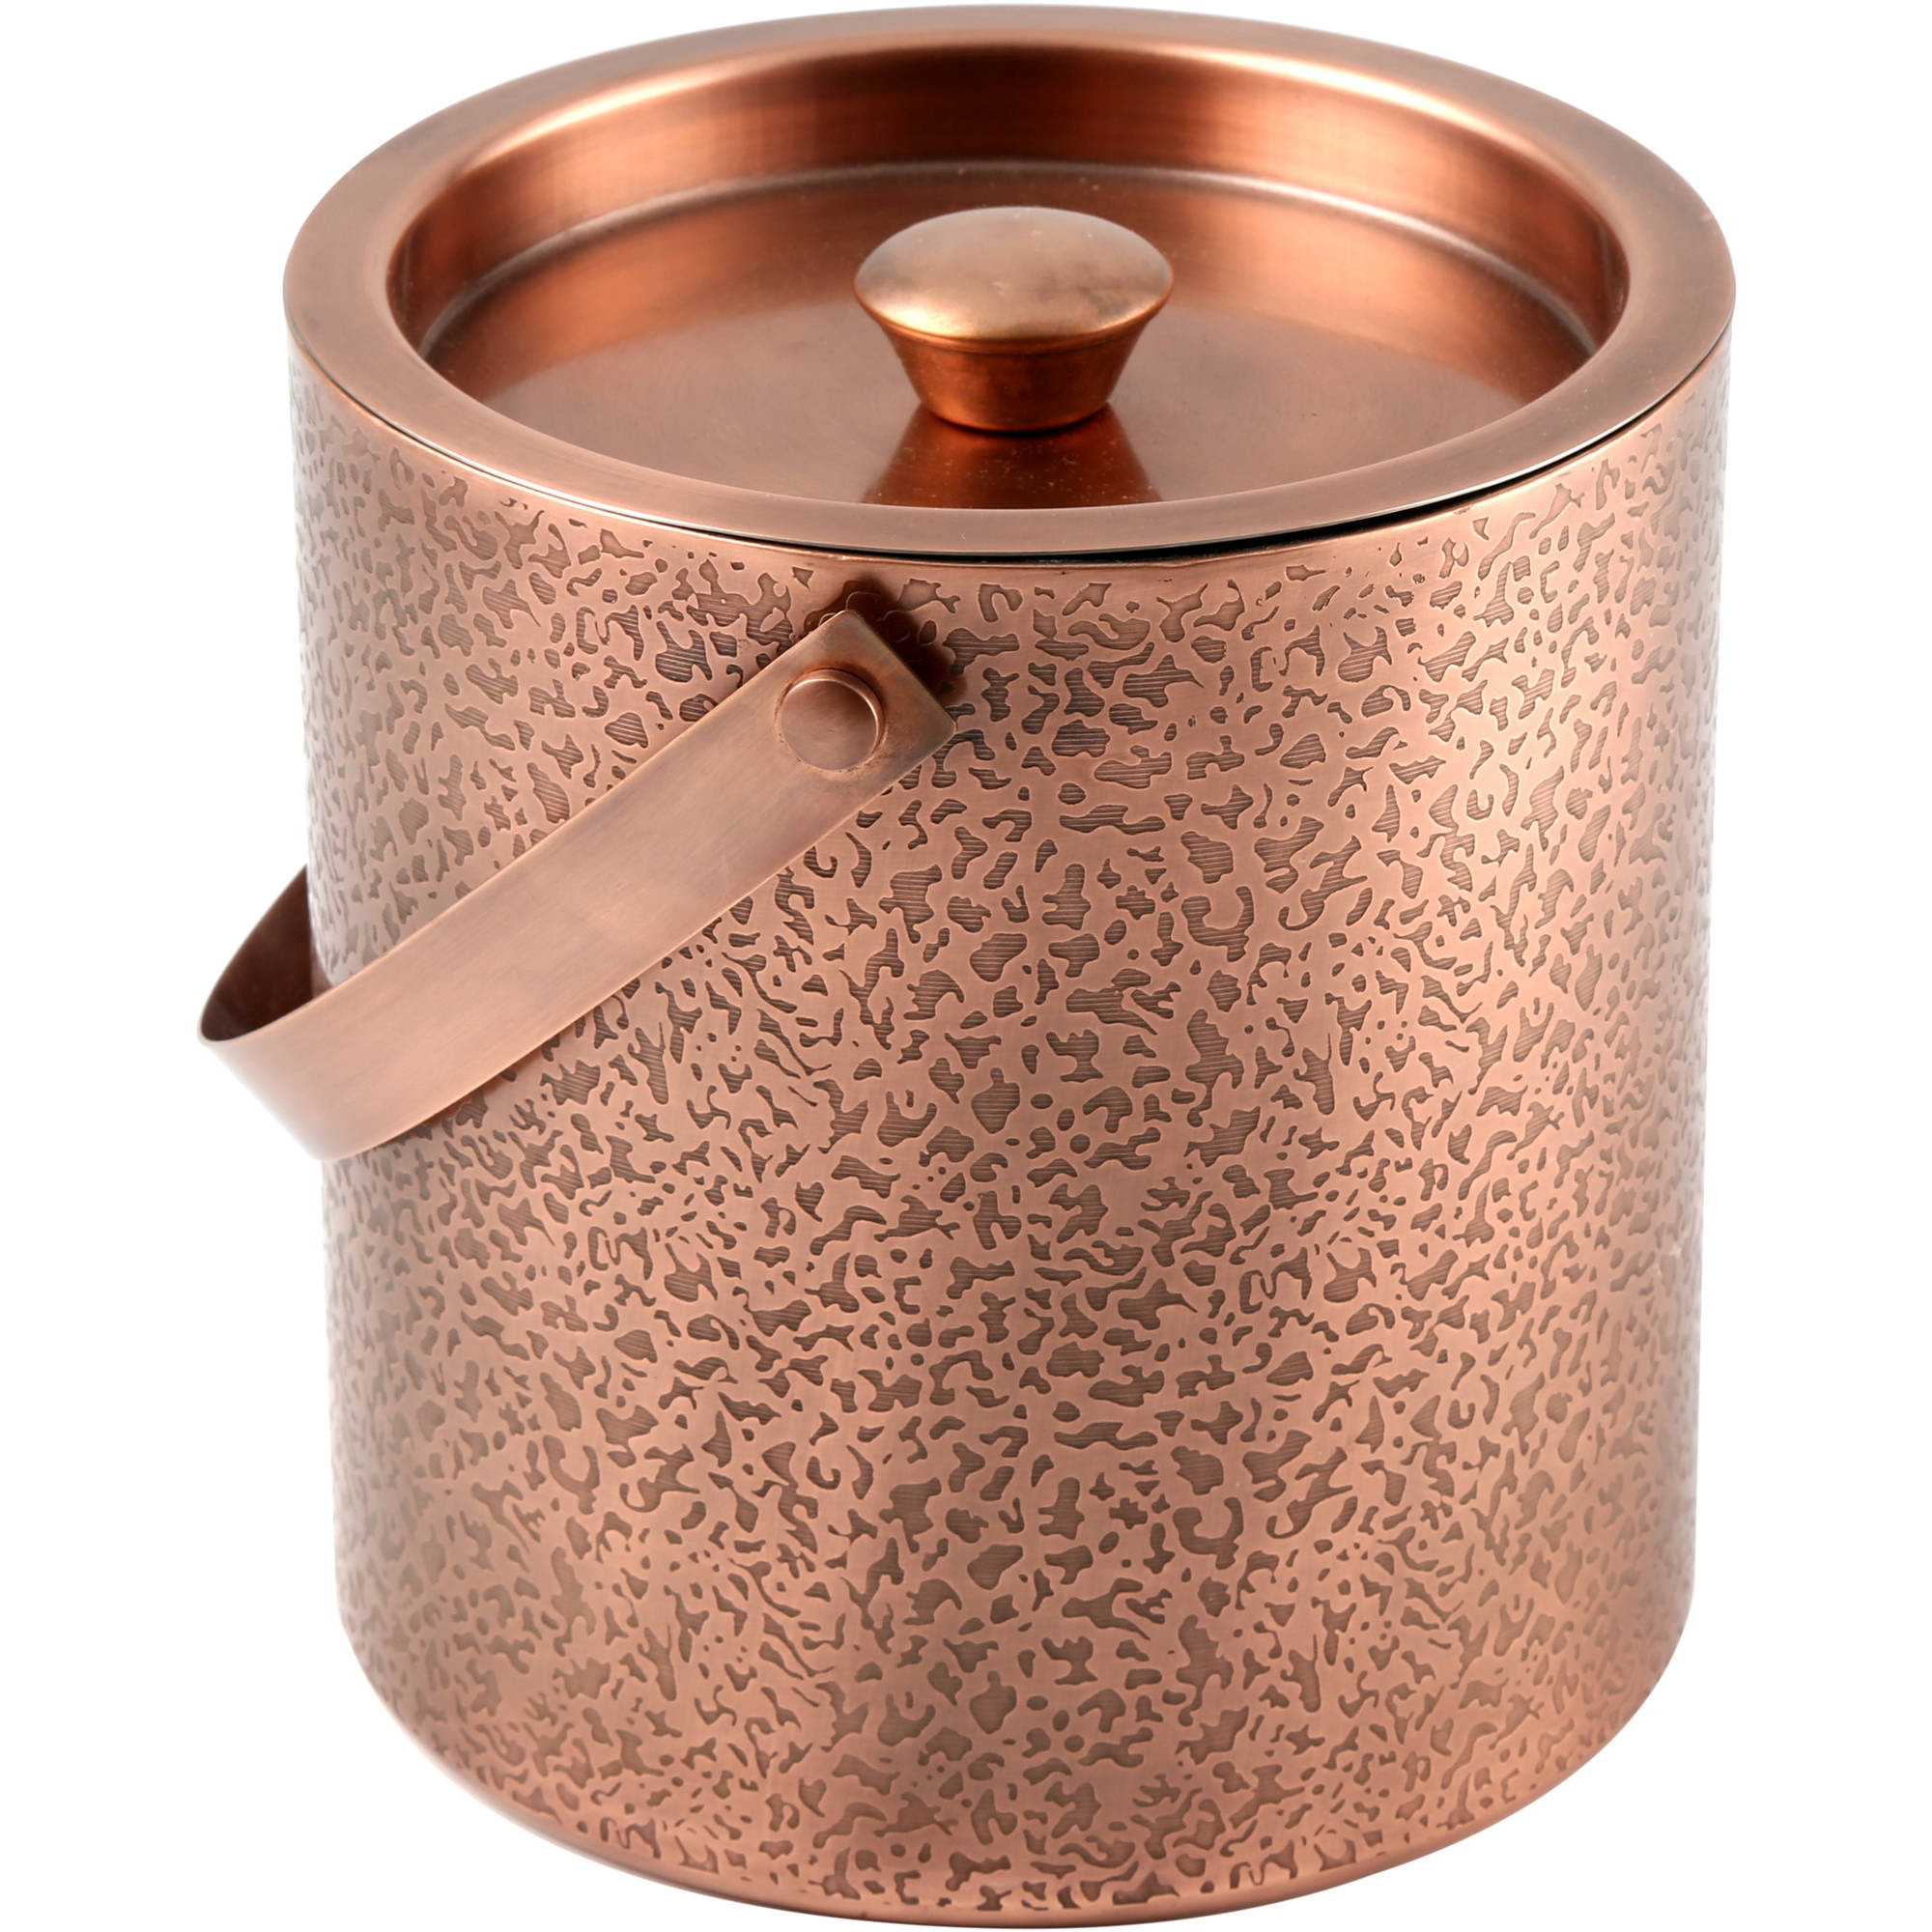 Cambridge Kerry Copper Etched 3 qt D W Ice Bucket by Cambridge